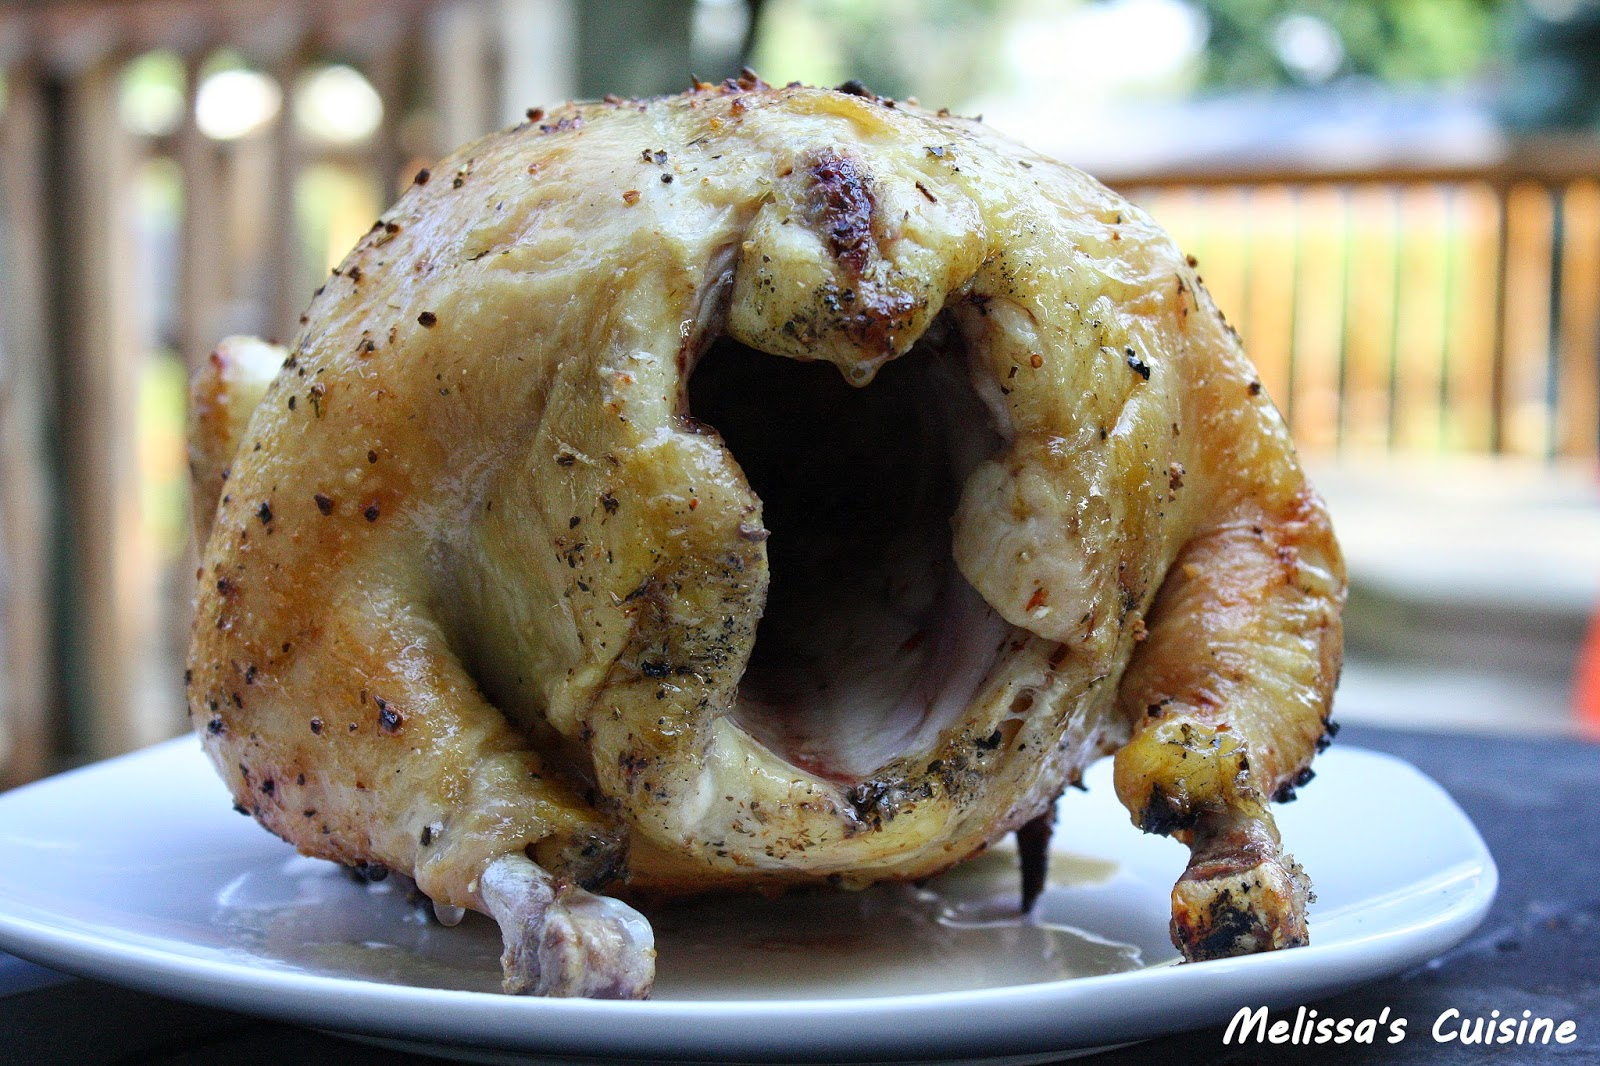 Melissa's Cuisine: Beer Can Chicken